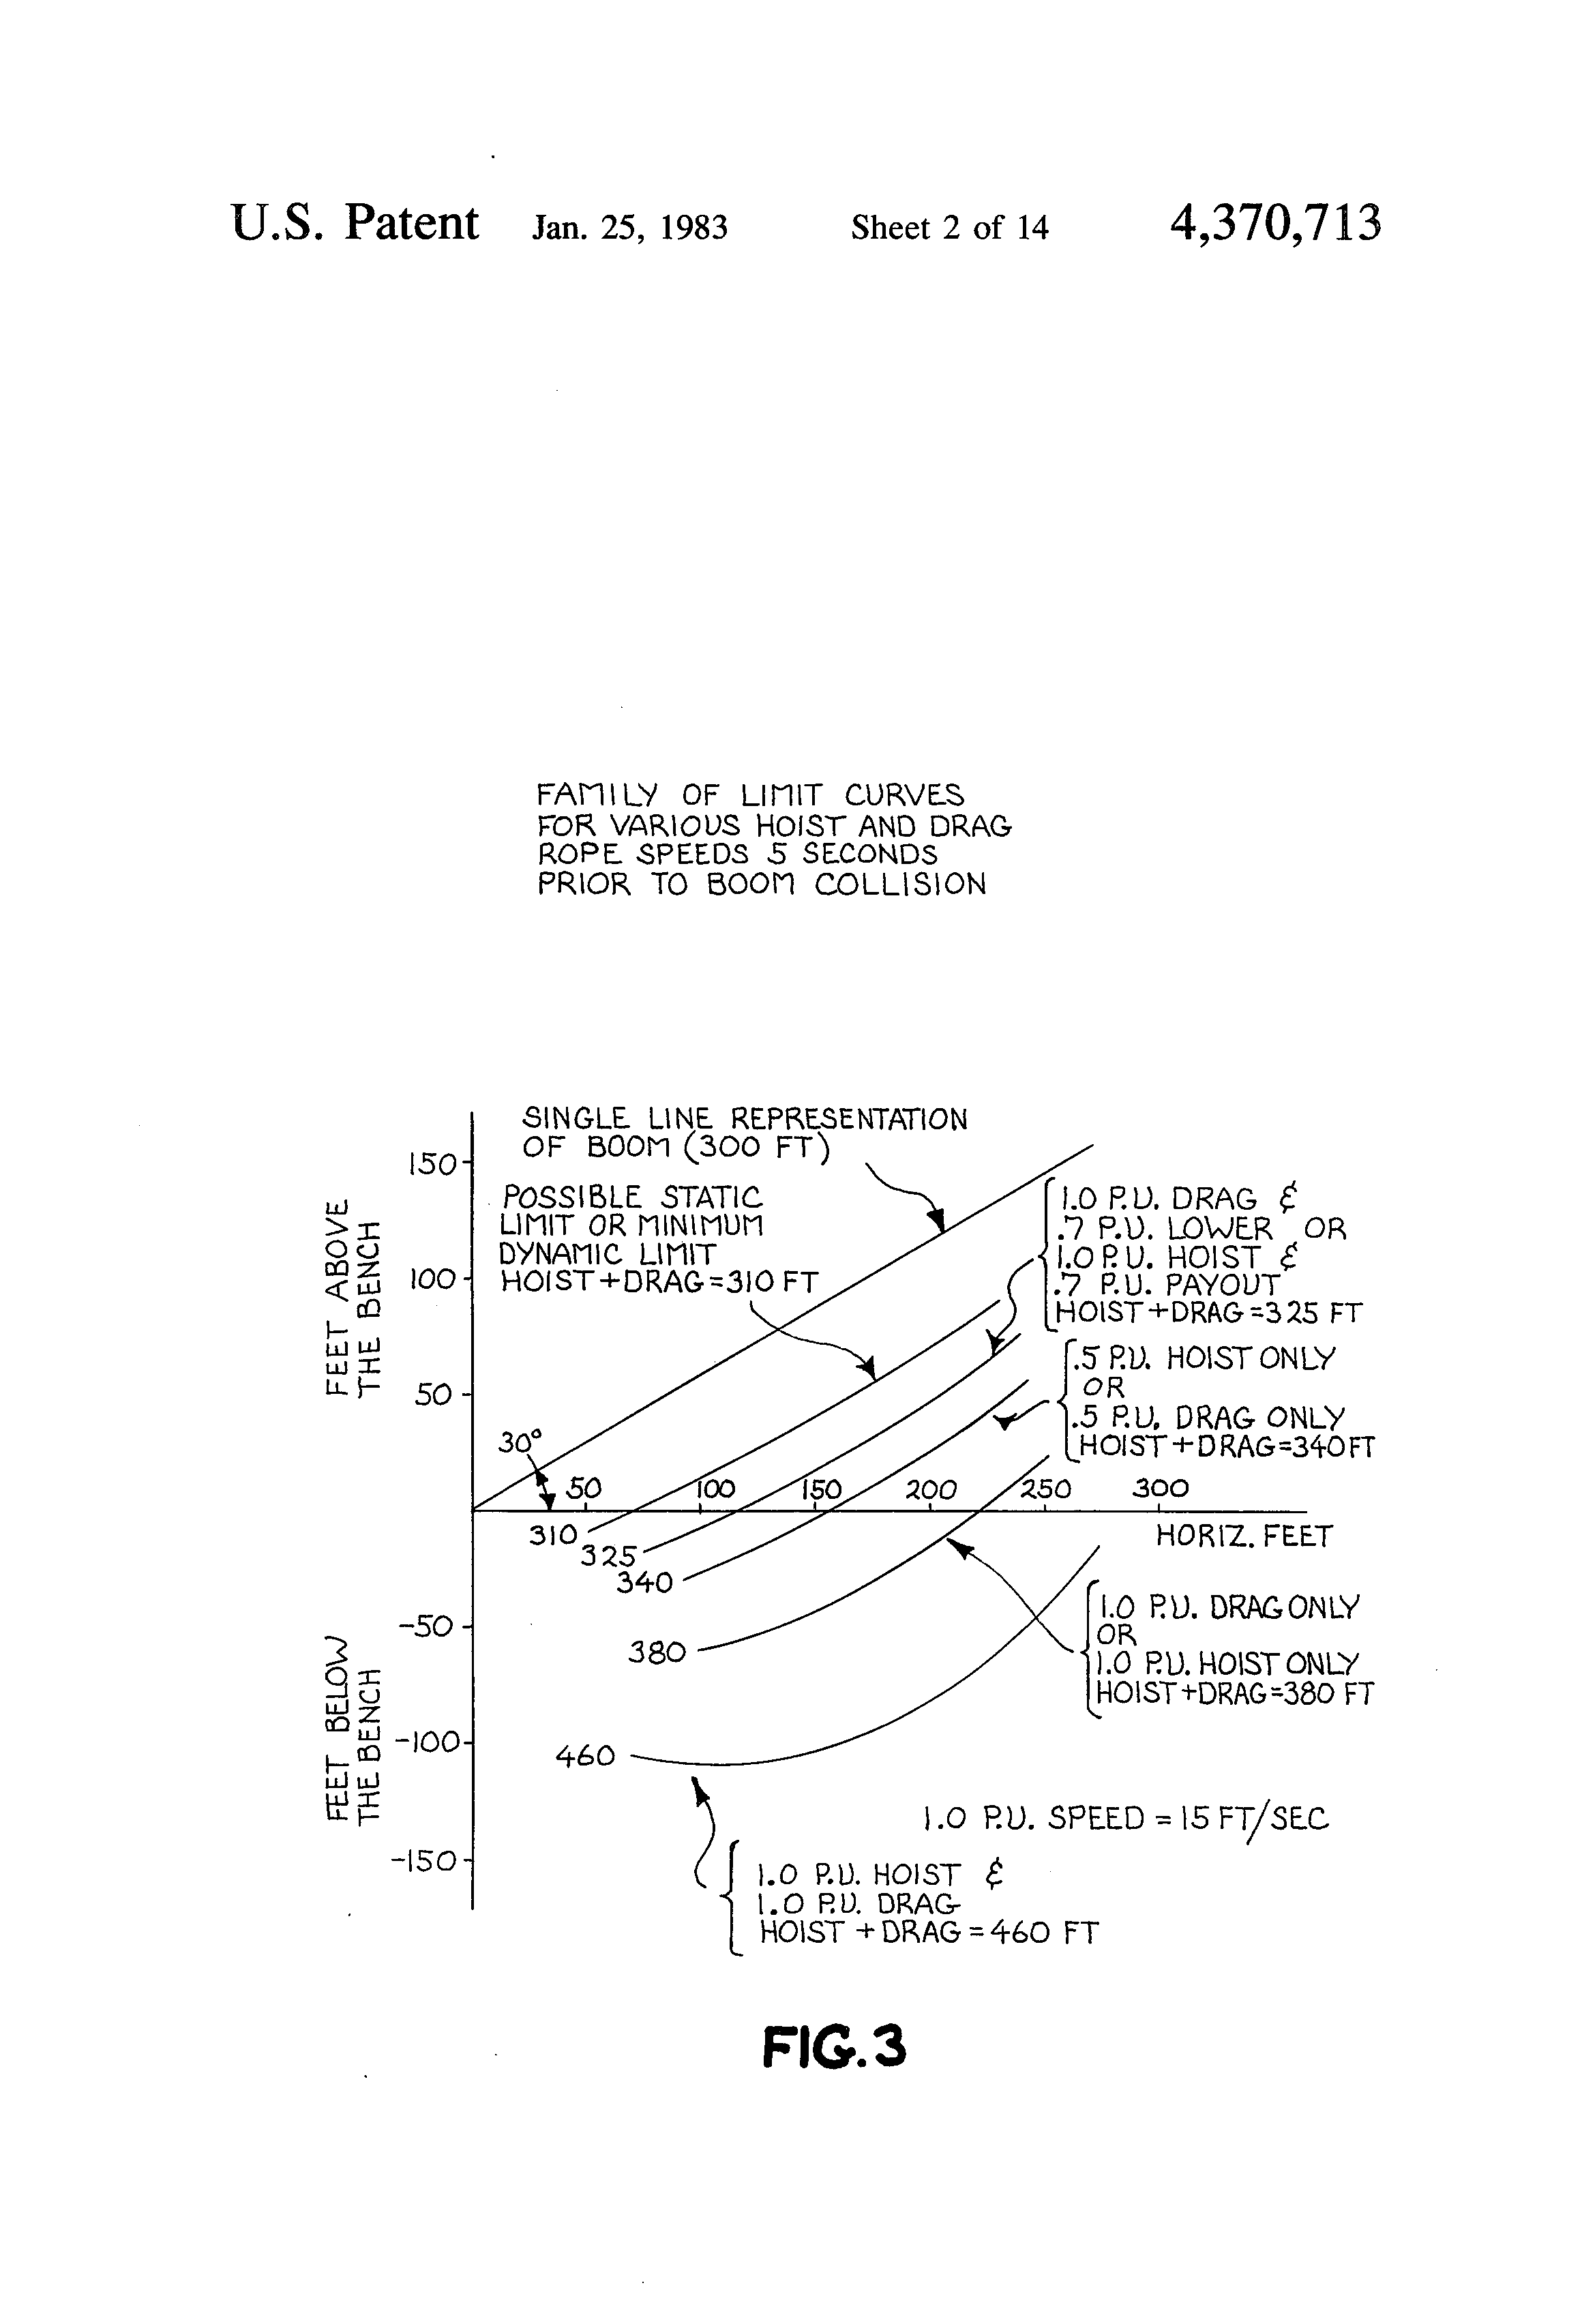 Types Of Line Drawing Algorithm : Patent us anti tightline control system and